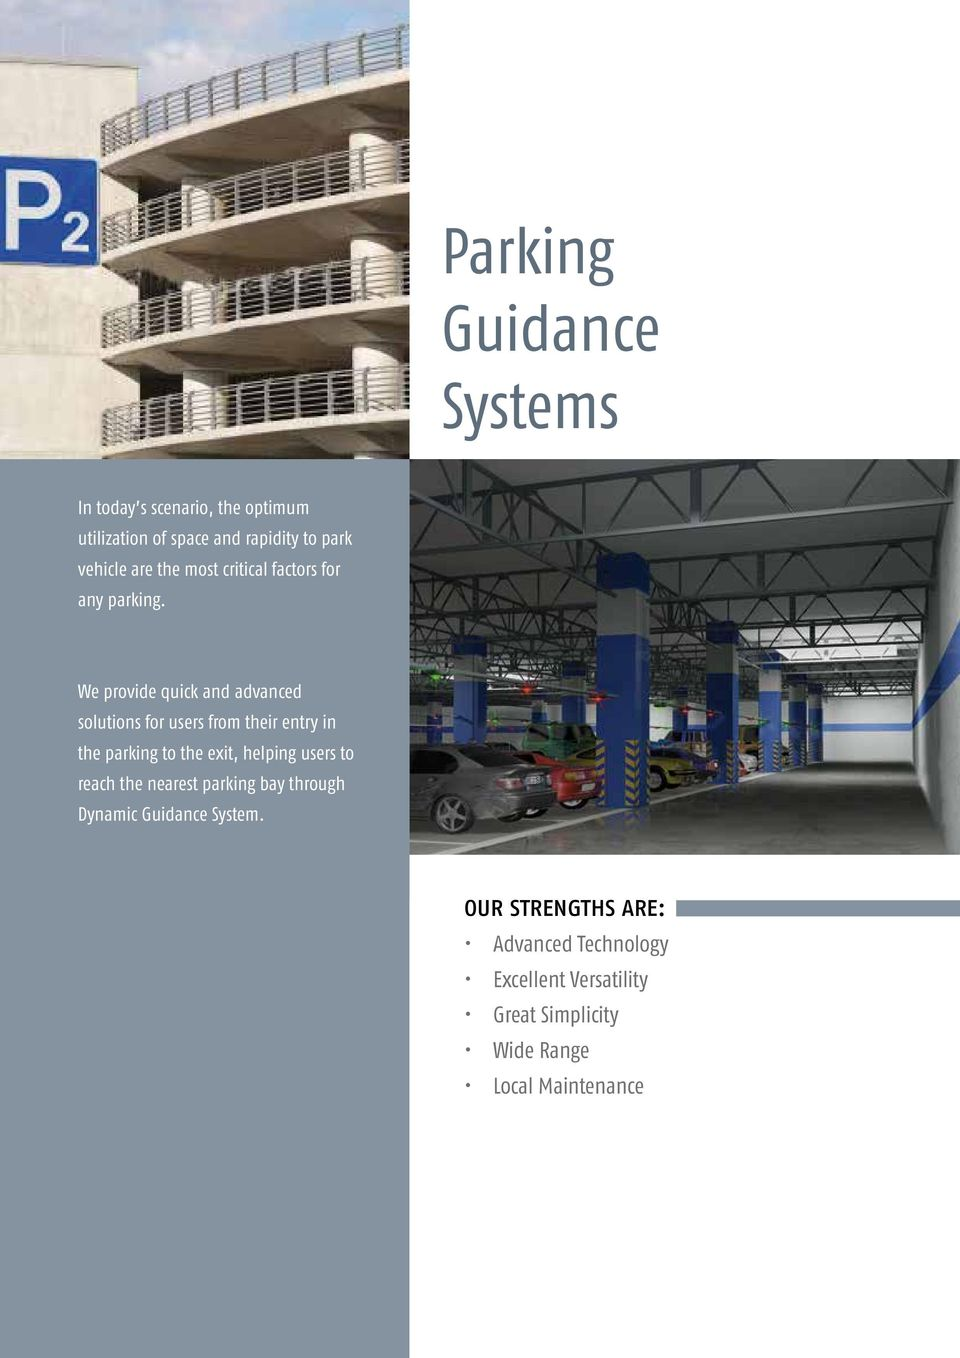 We provide quick and advanced solutions for users from their entry in the parking to the exit, helping users